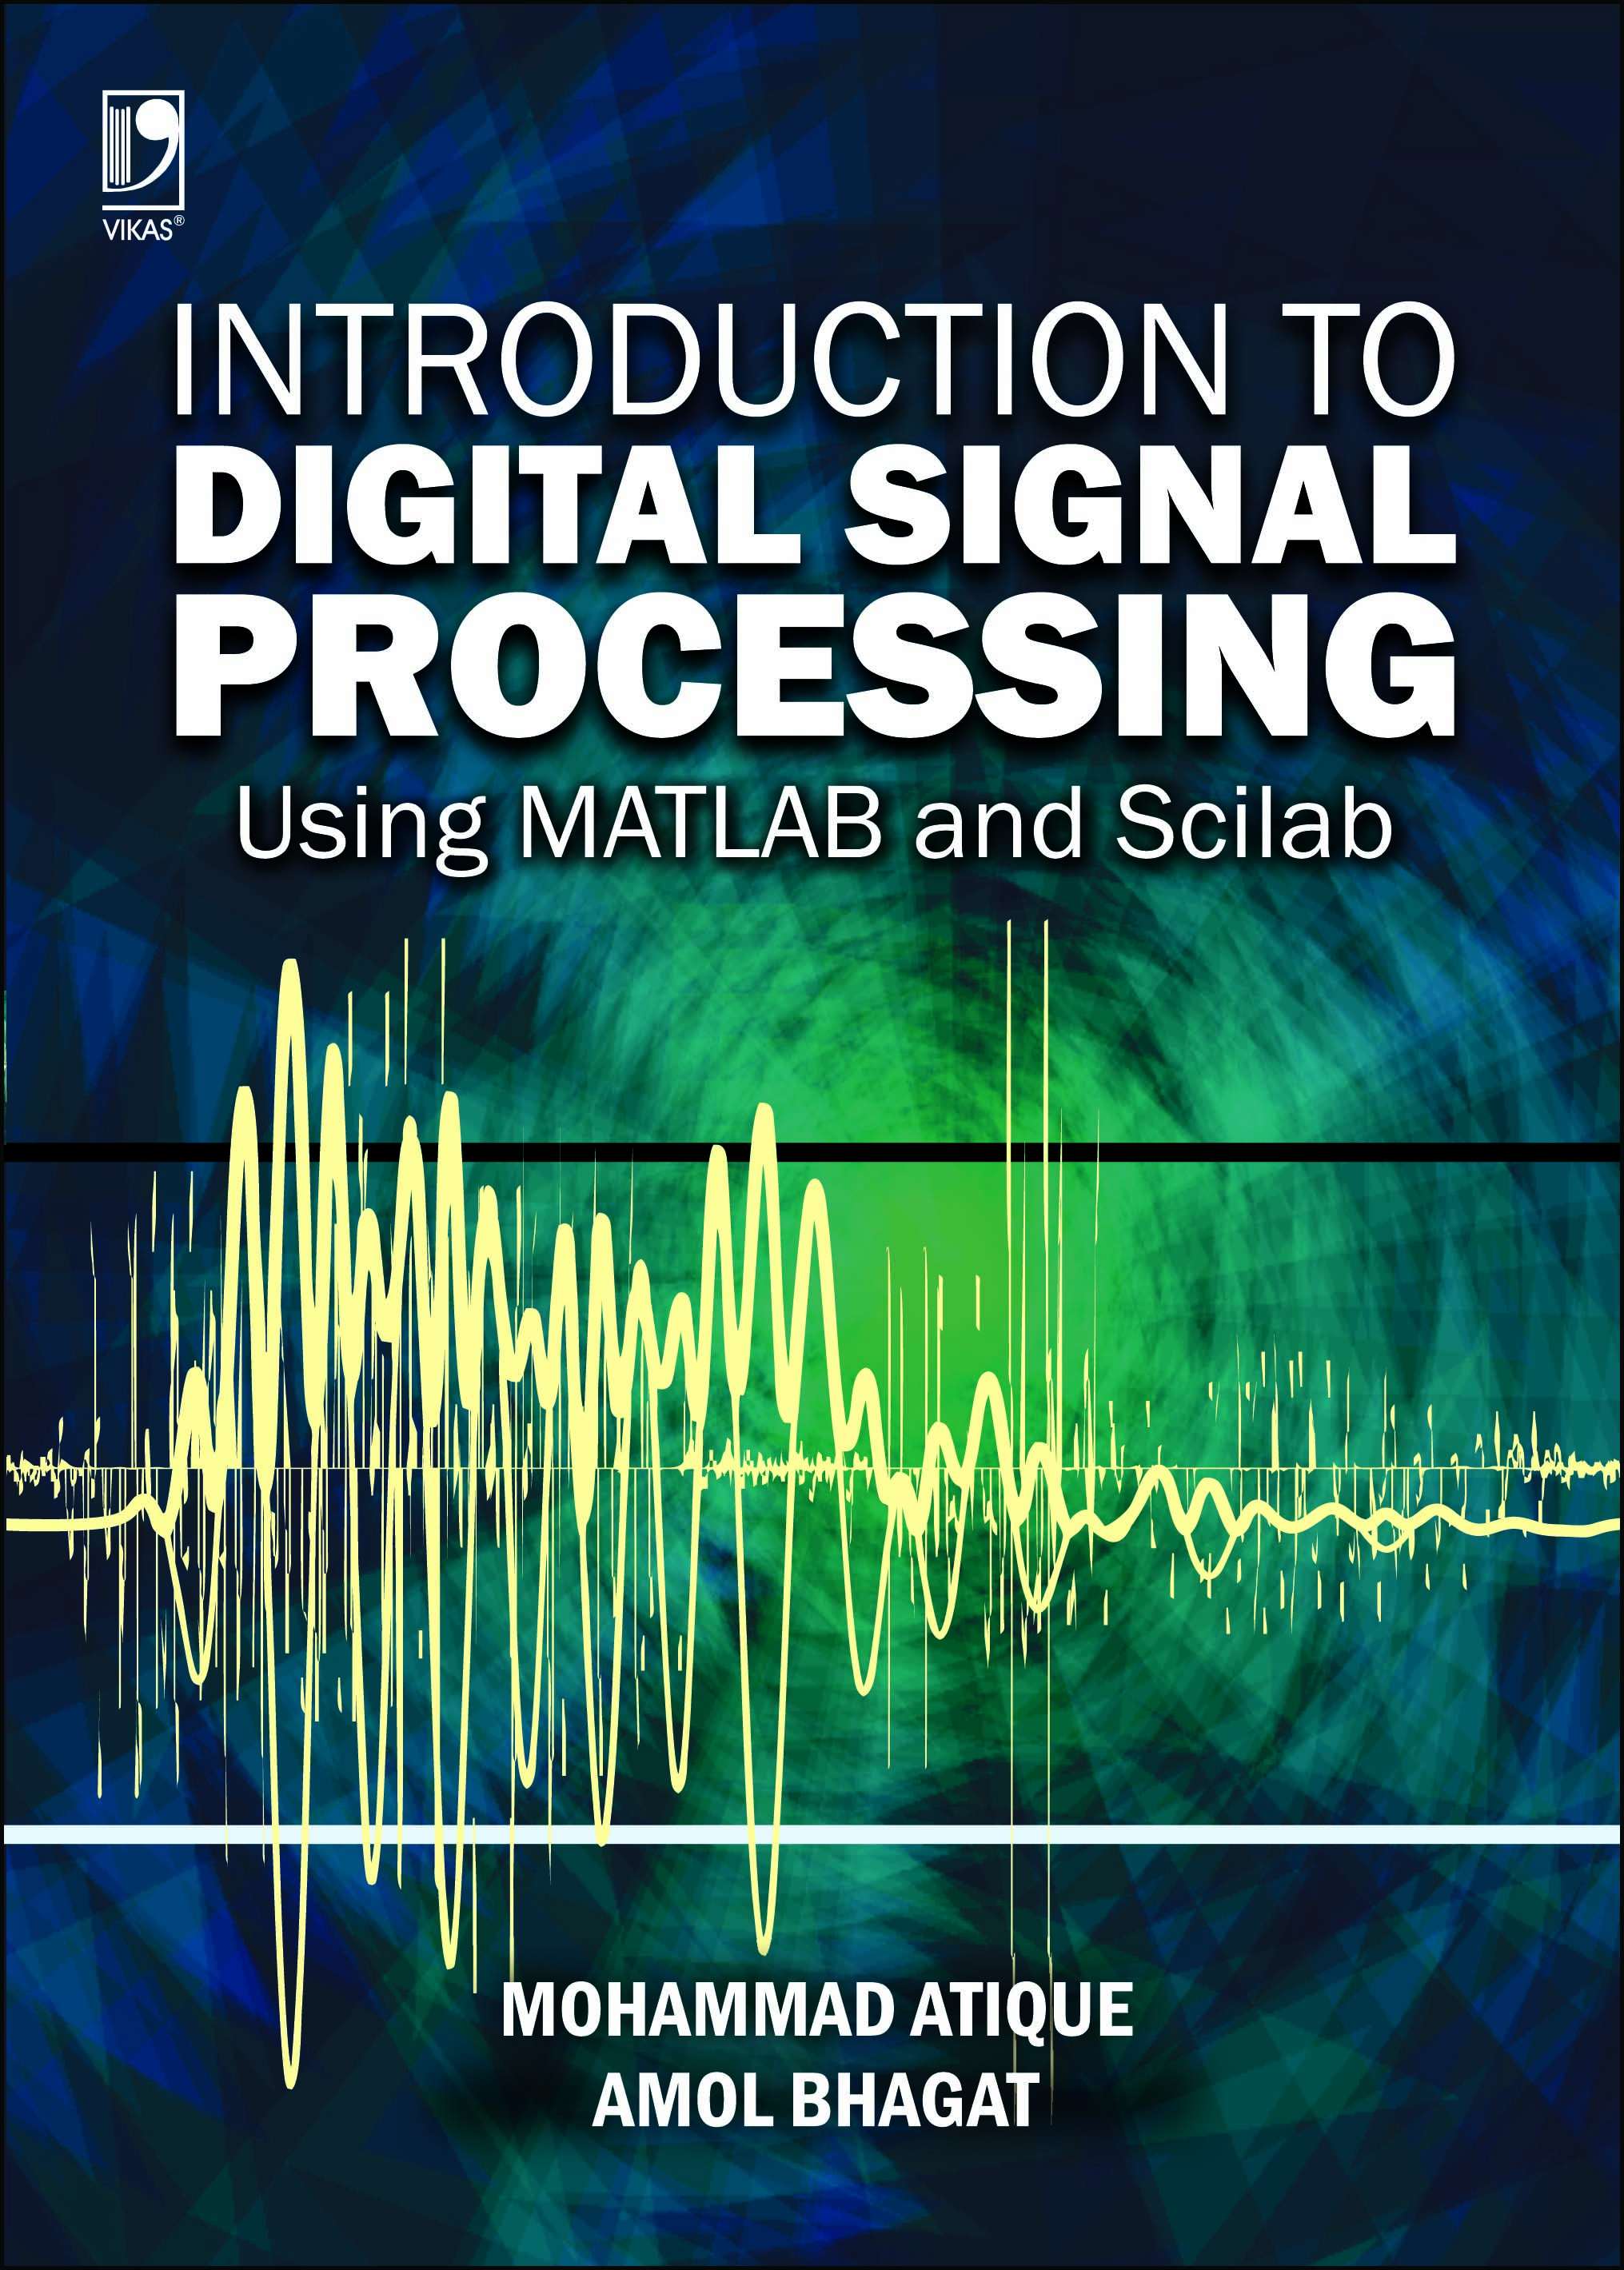 INTRODUCTION TO DIGITAL SIGNAL PROCESSING USING MATLAB AND SCILAB